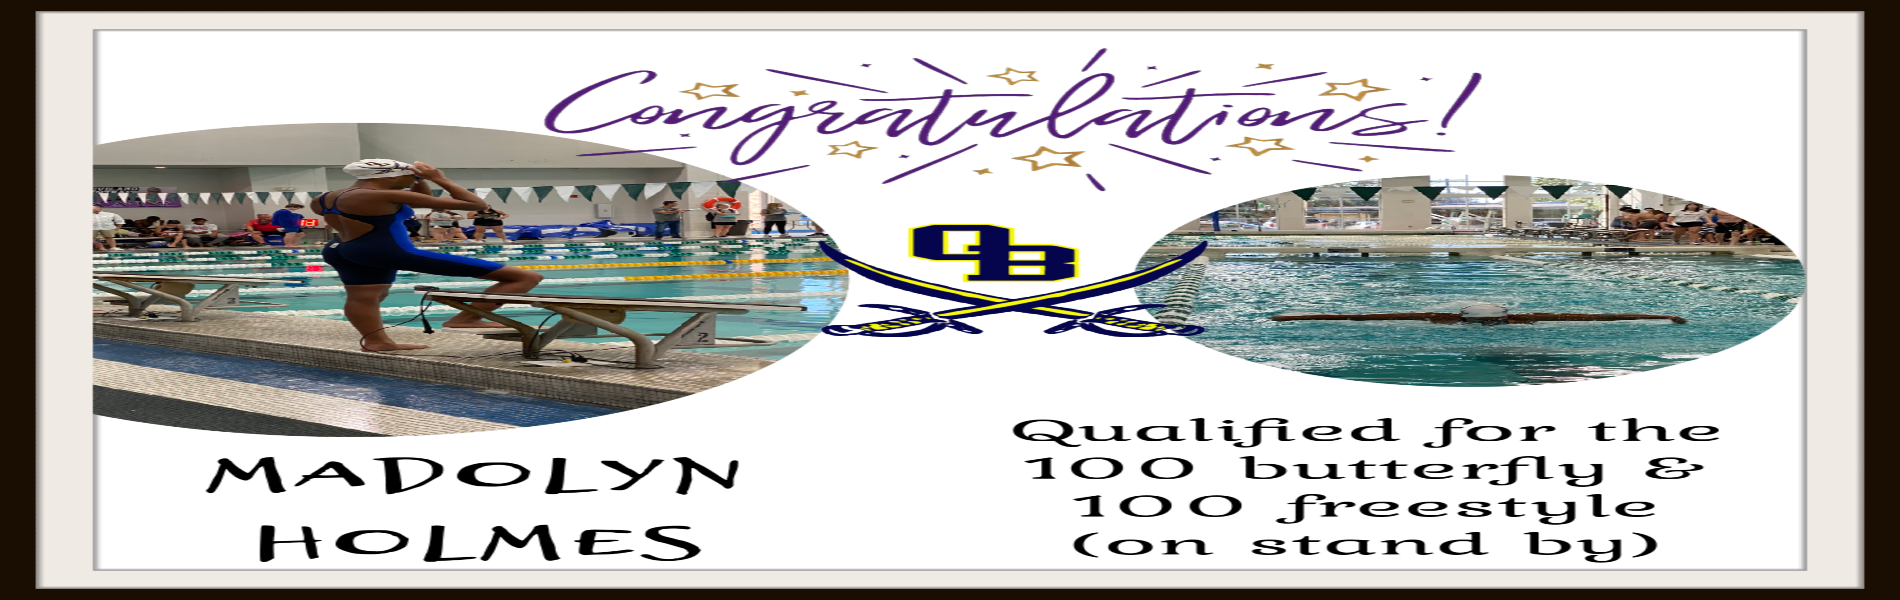 Madolyn Holmes qualifies for State Swimming